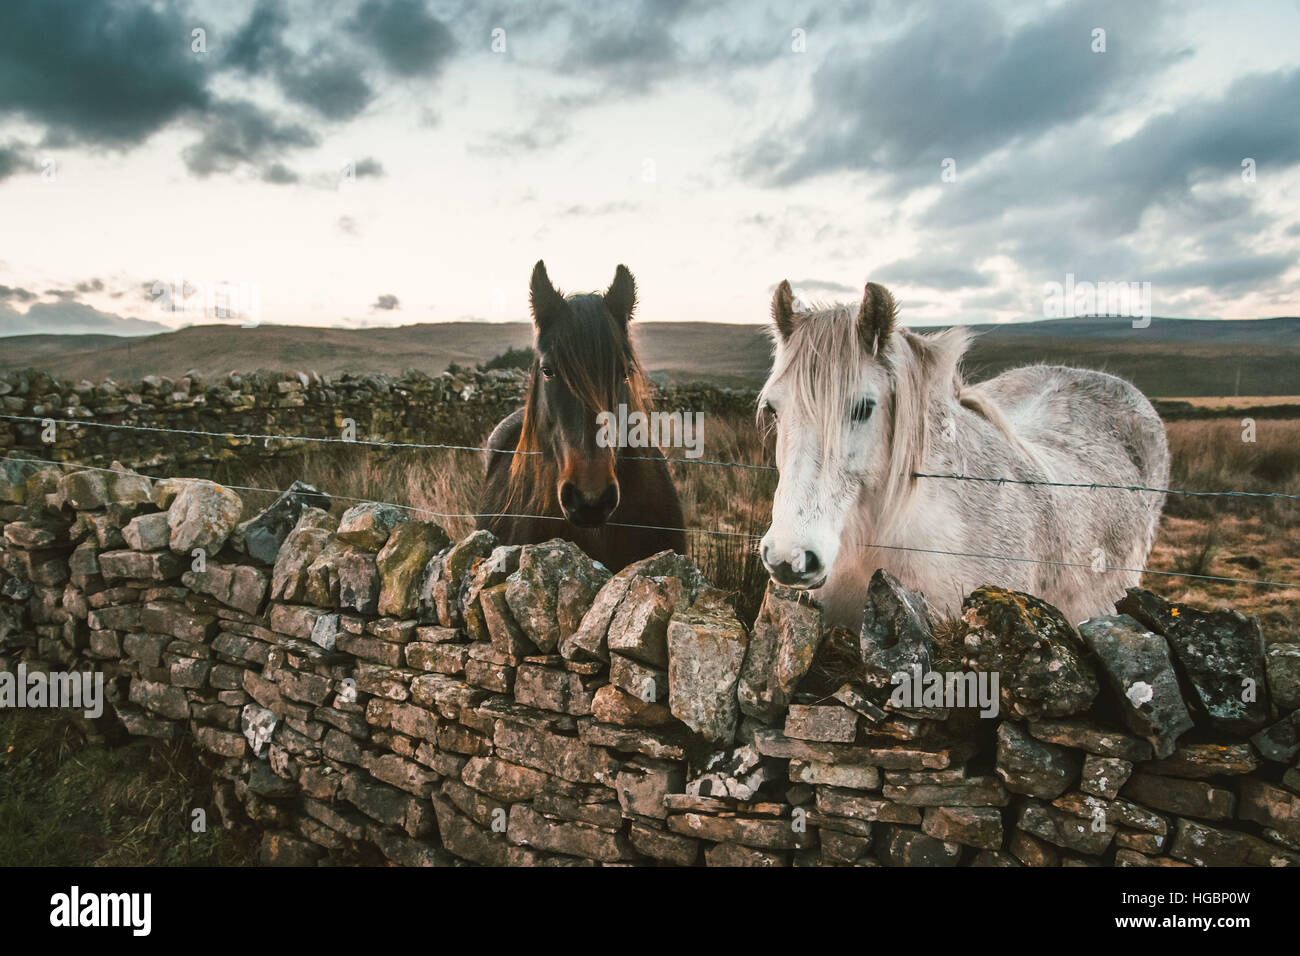 Two horses stand in a field surround by stone walls against the dramatic backdrop of the Pennines. Yorkshire, England. - Stock Image